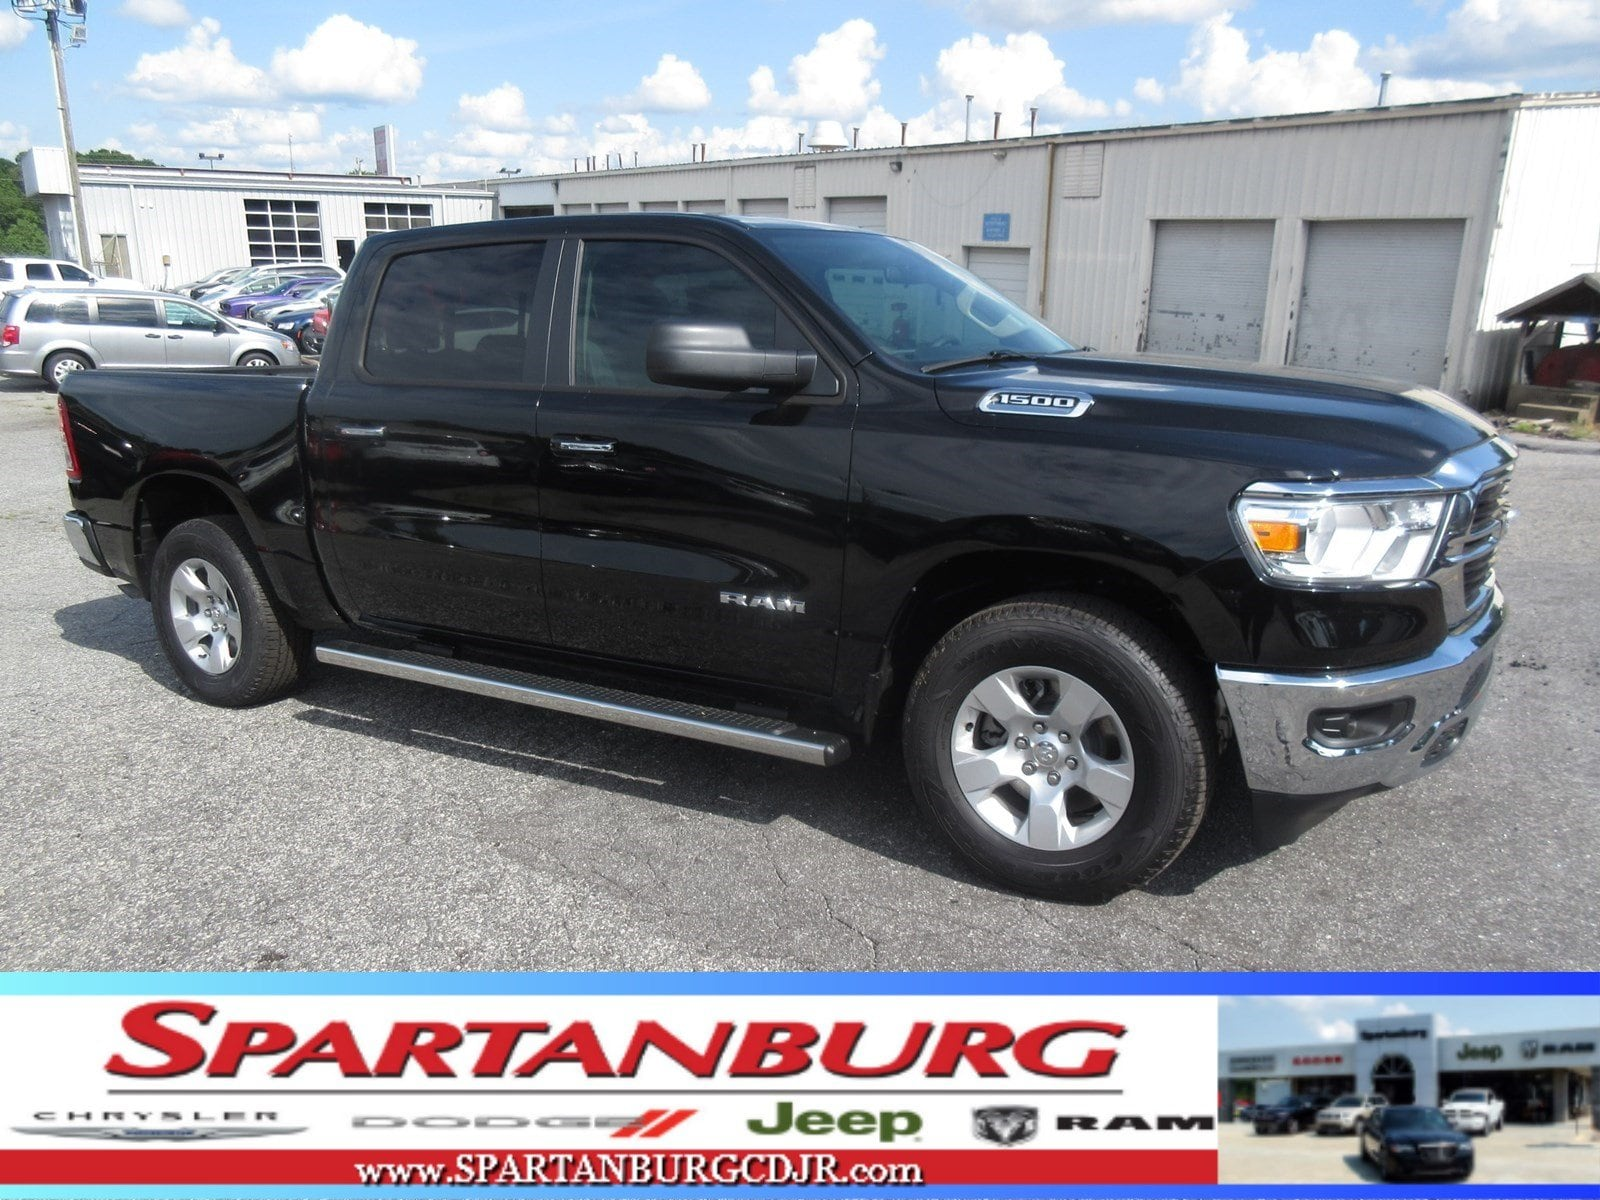 Ram Pickup Truck Price Offers & Lease Sale – Spartanburg SC